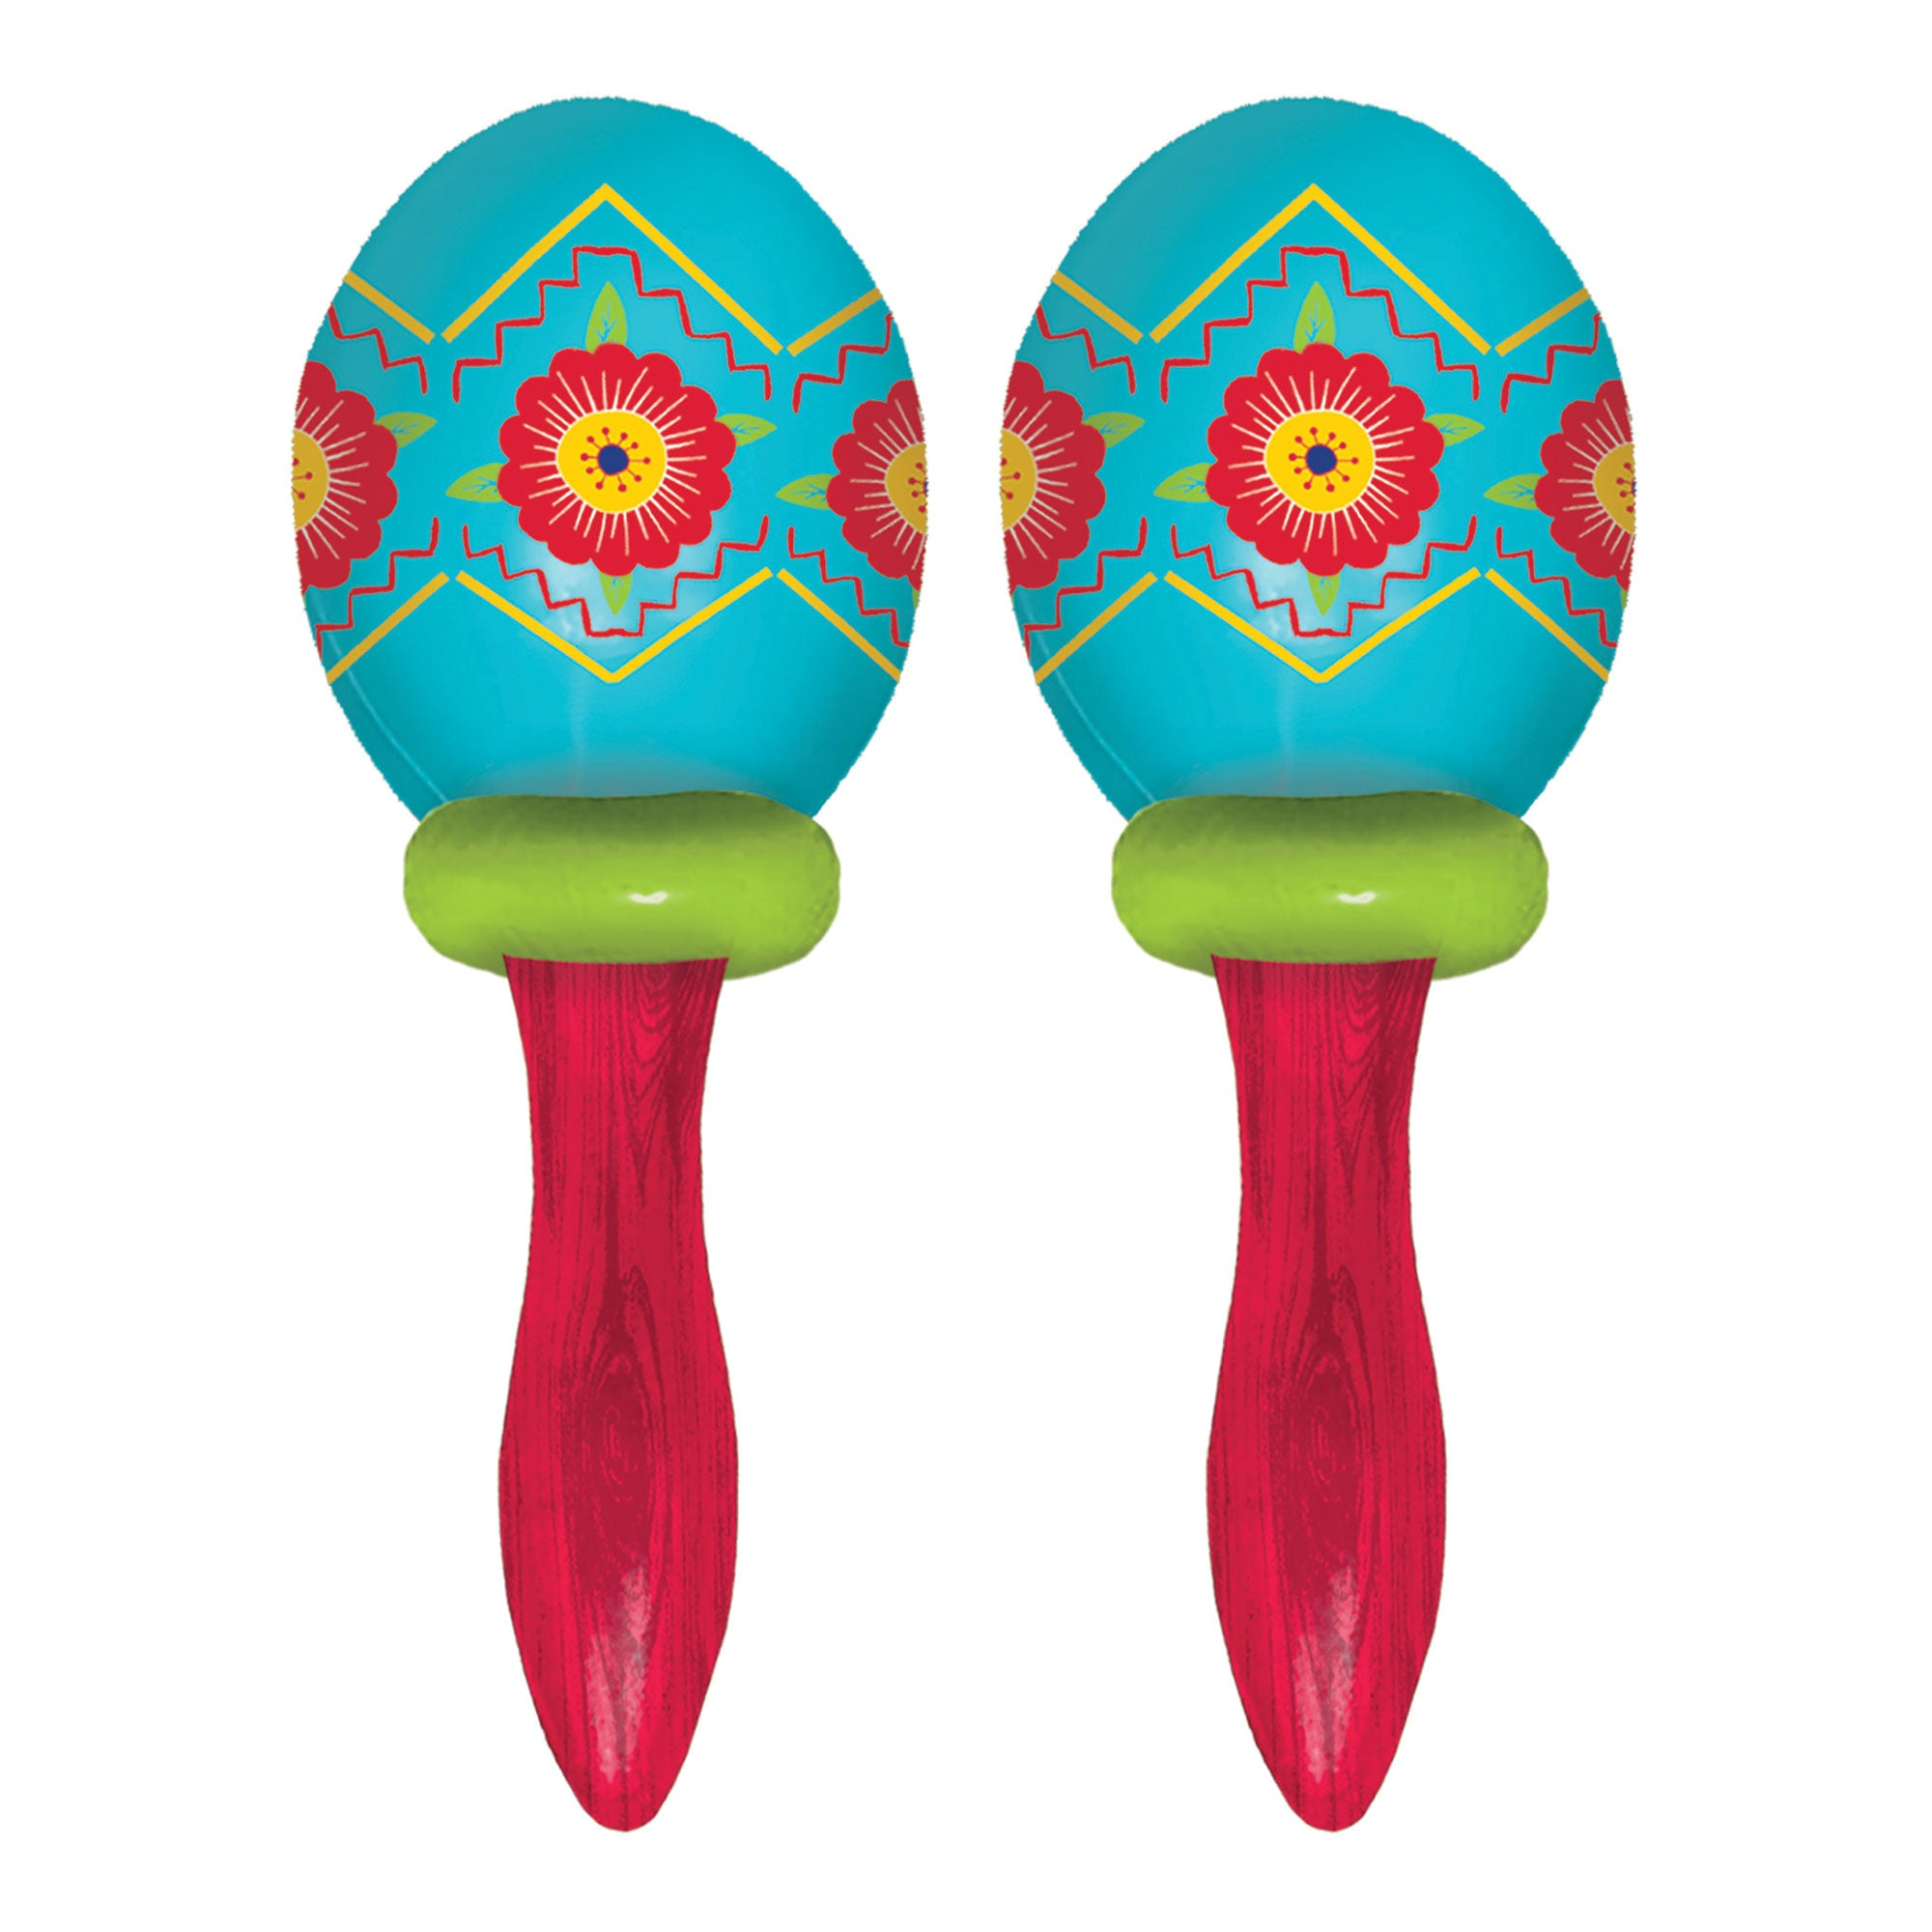 Fiesta Maracas Favors 2pk - Party Savers